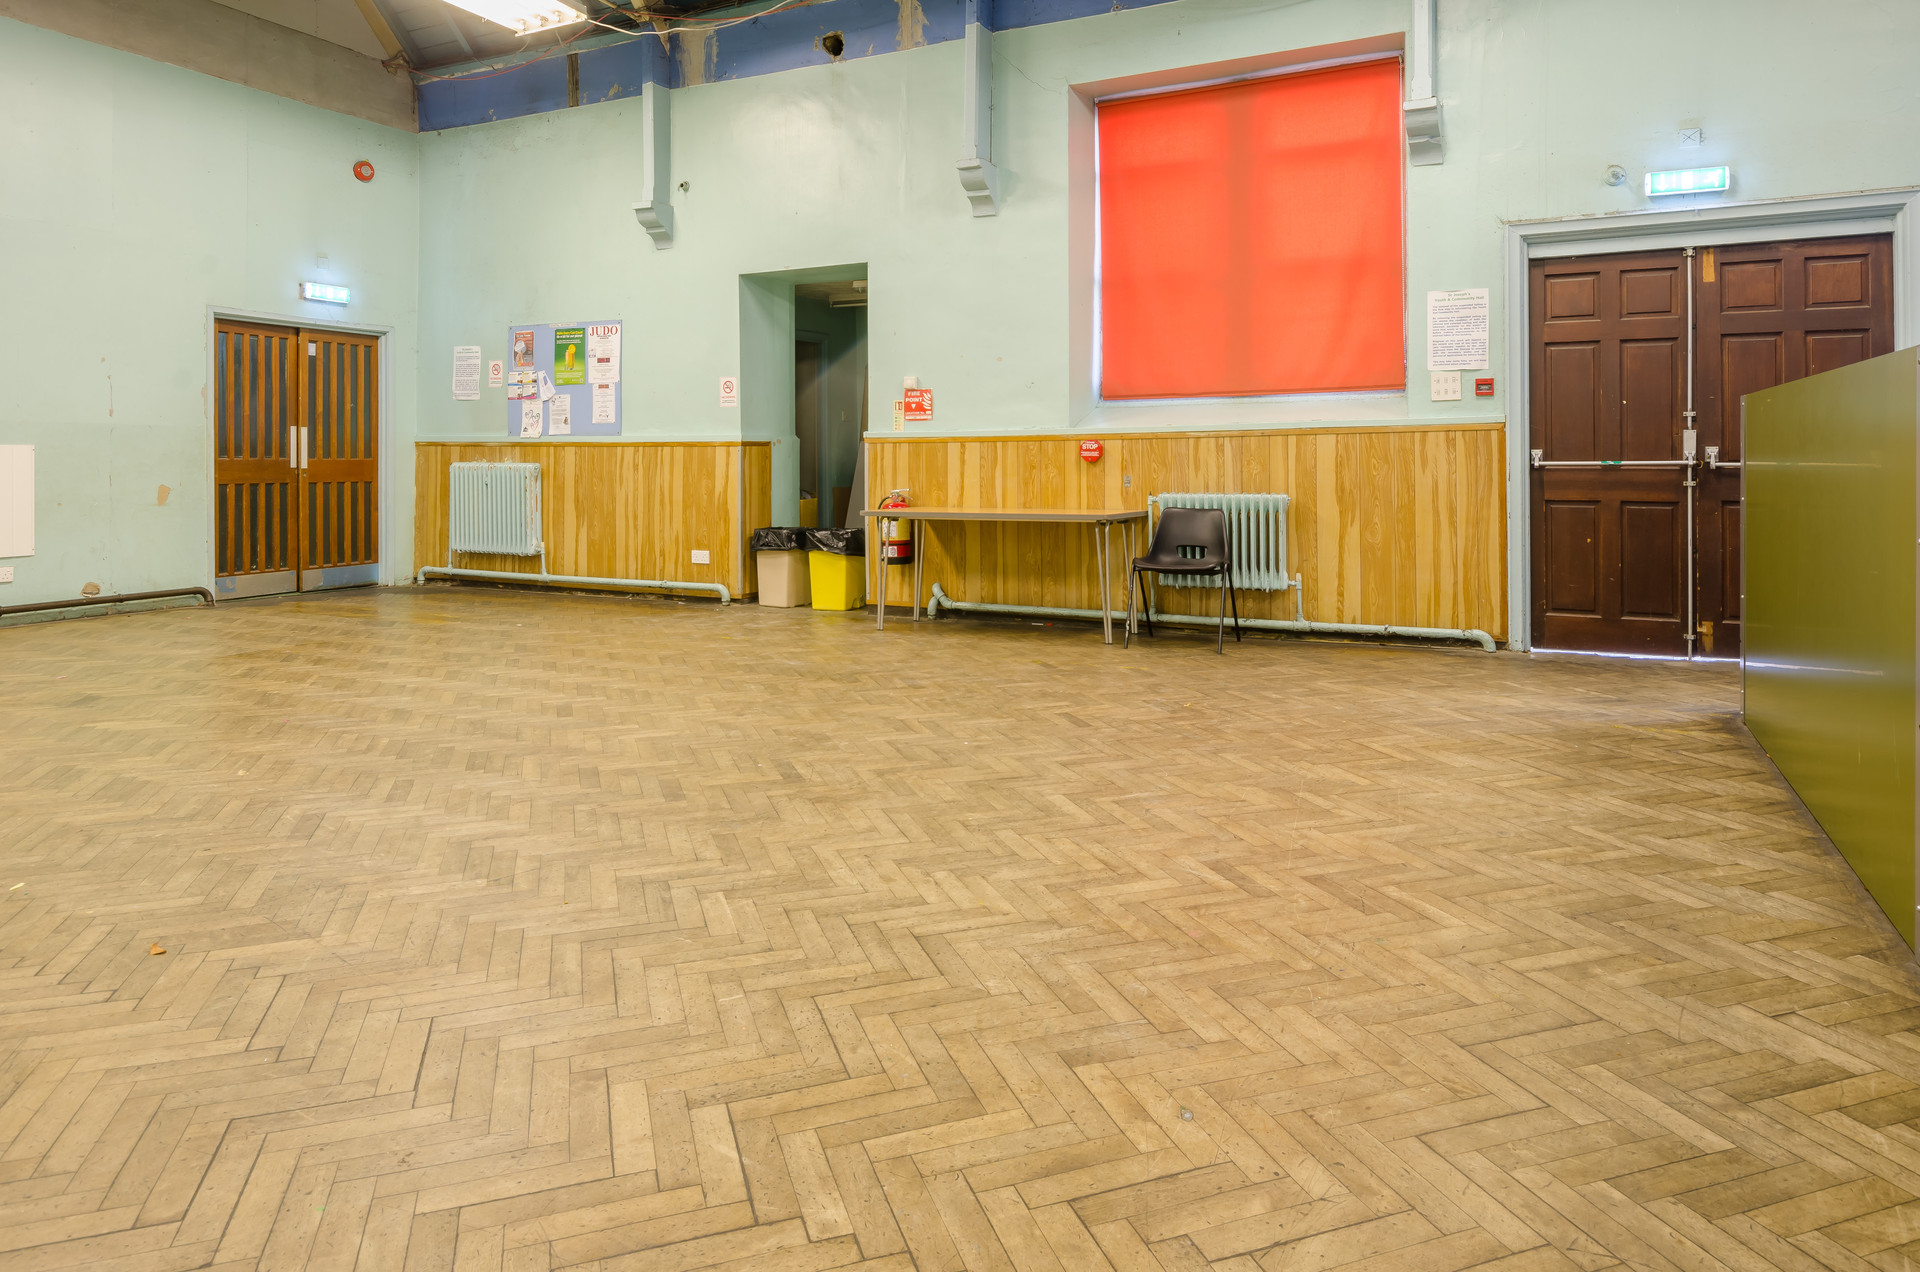 The Youth Hall